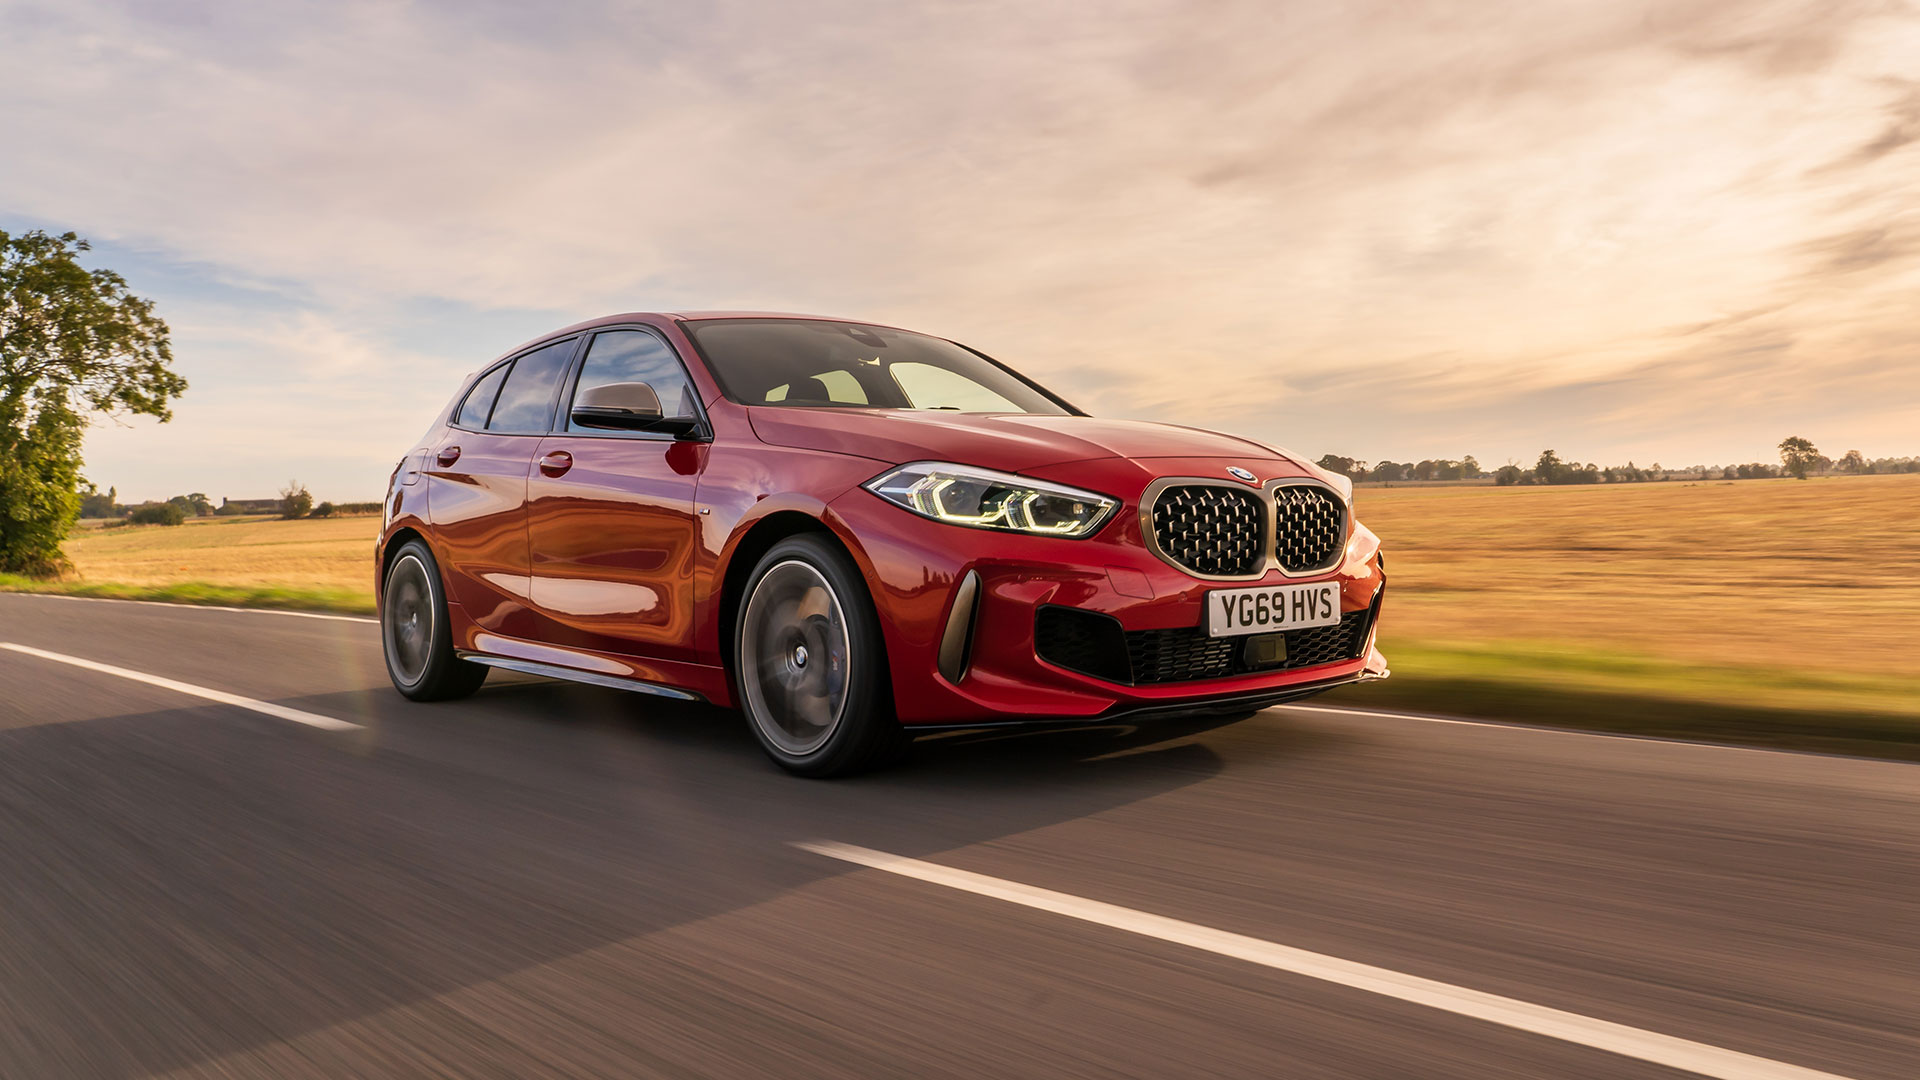 Red Bmw 1 Series Used Cars For Sale Autotrader Uk